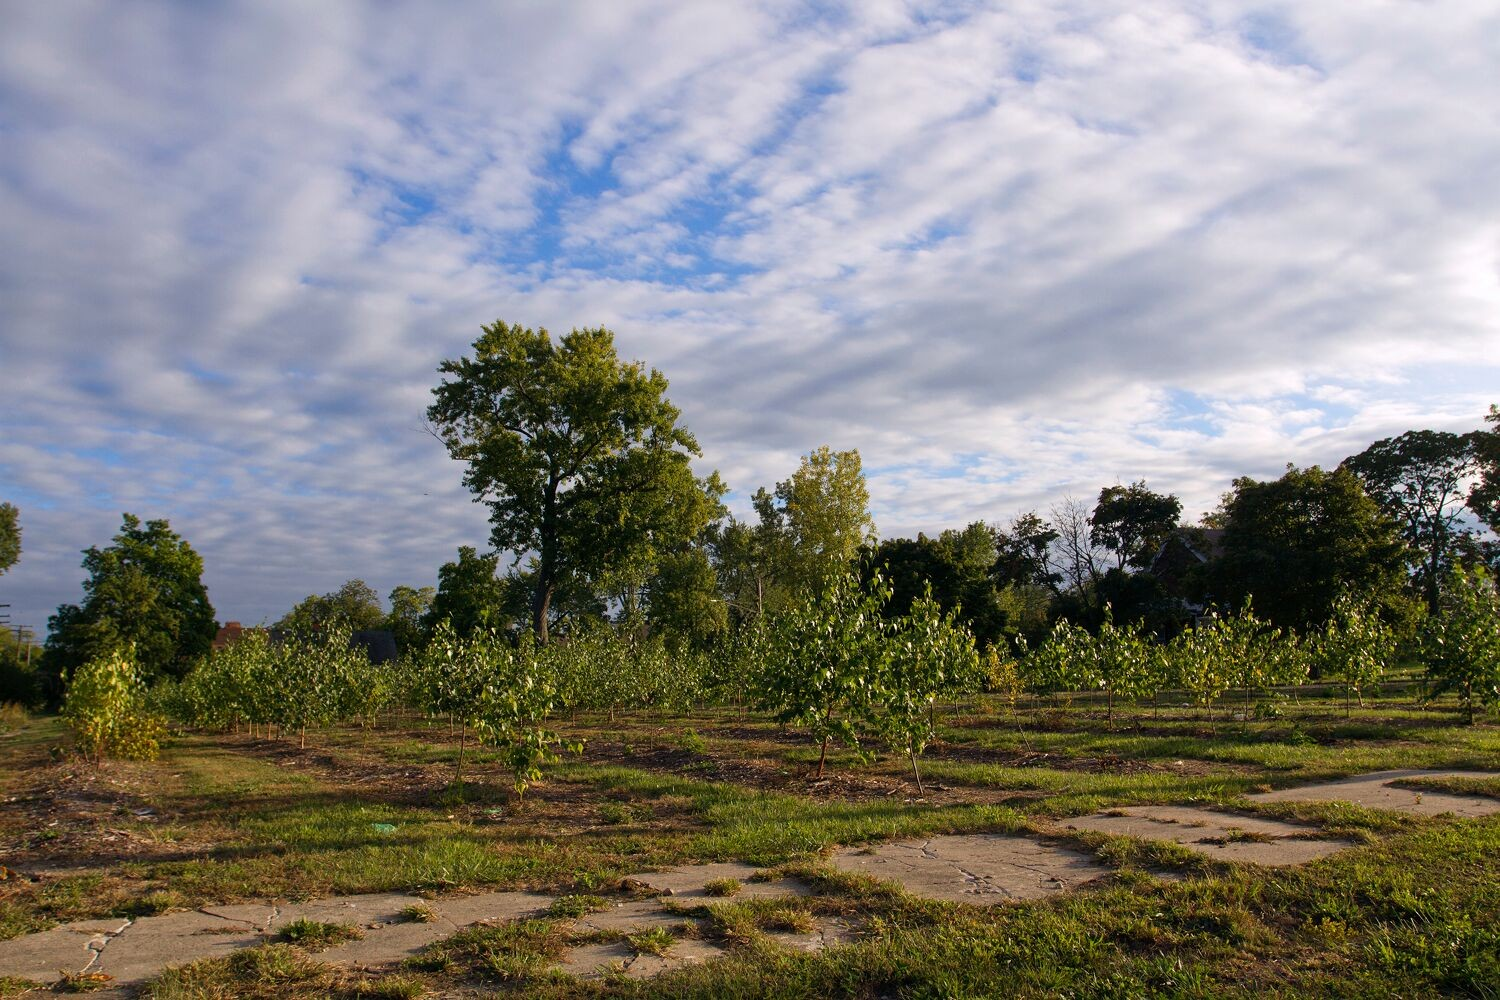 Detroit Artists' Test Lab to explores urban farming with free 'Land